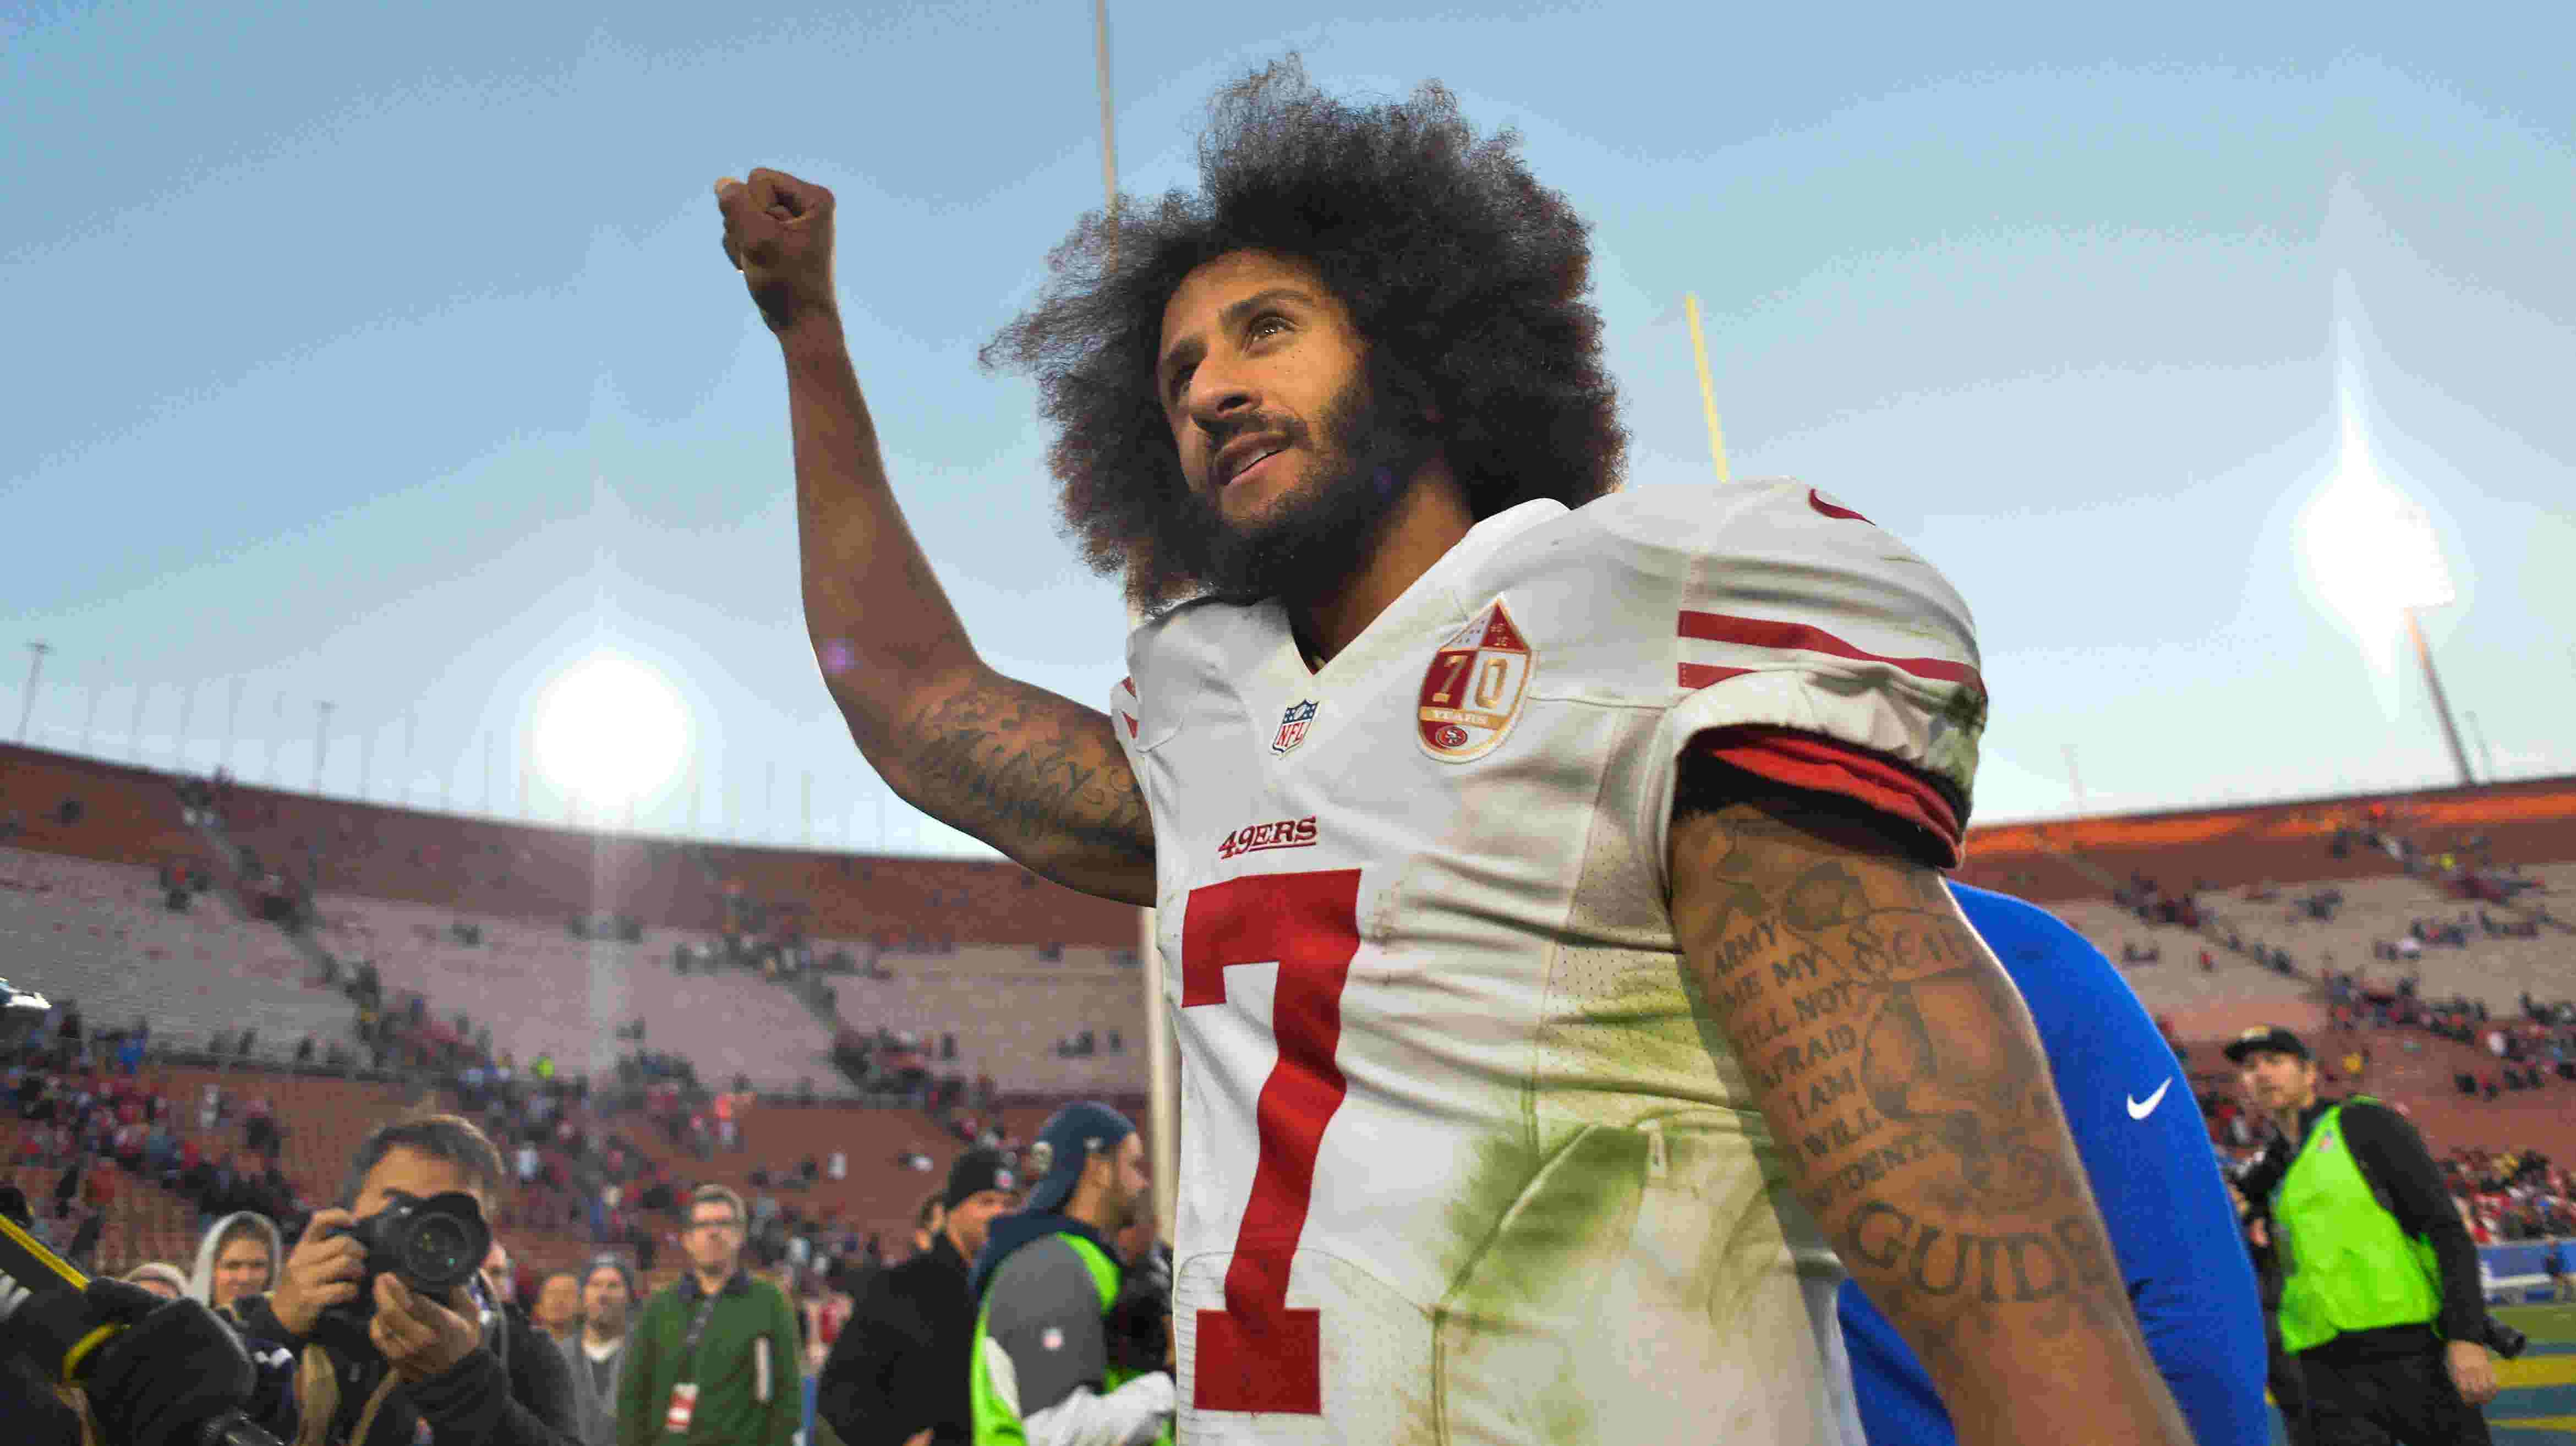 Colin Kaepernick is nominated for the Pro Football Hall of Fame